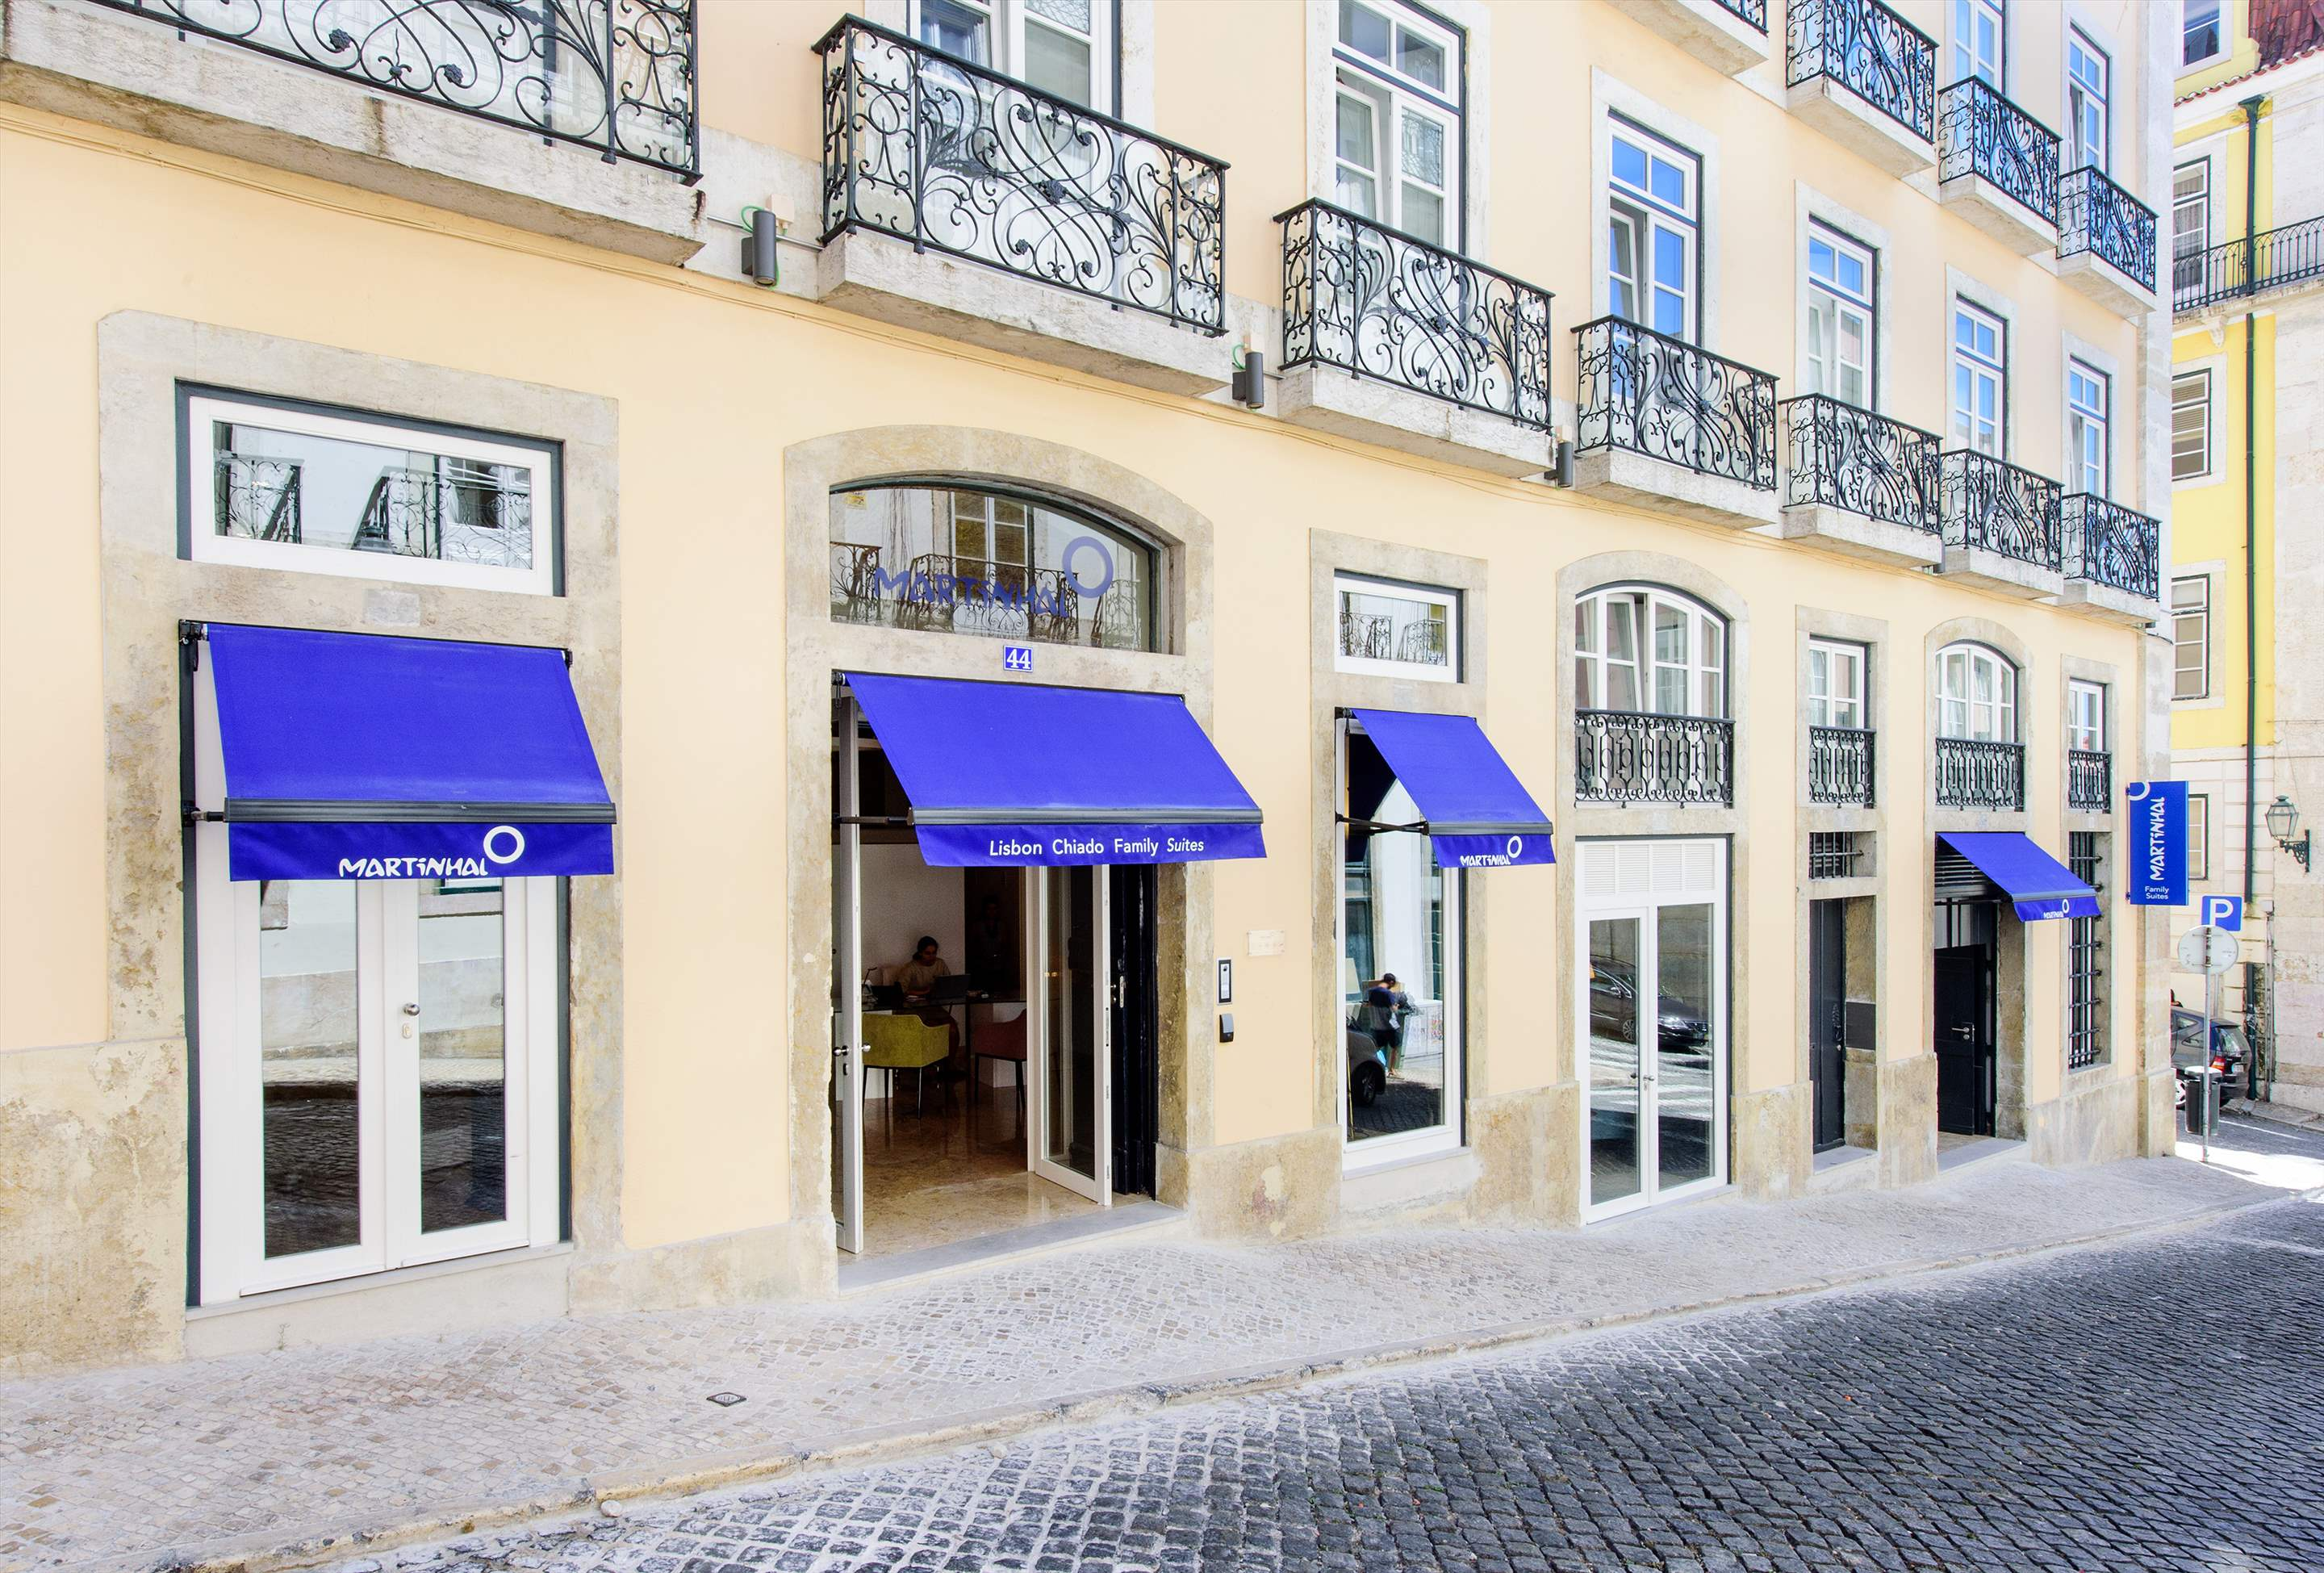 Martinhal Chiado Family Suites, Premium Deluxe Apartment One Bedroom with single beds, 1 bedroom apartment in Lisbon Coast, Lisbon Photo #9